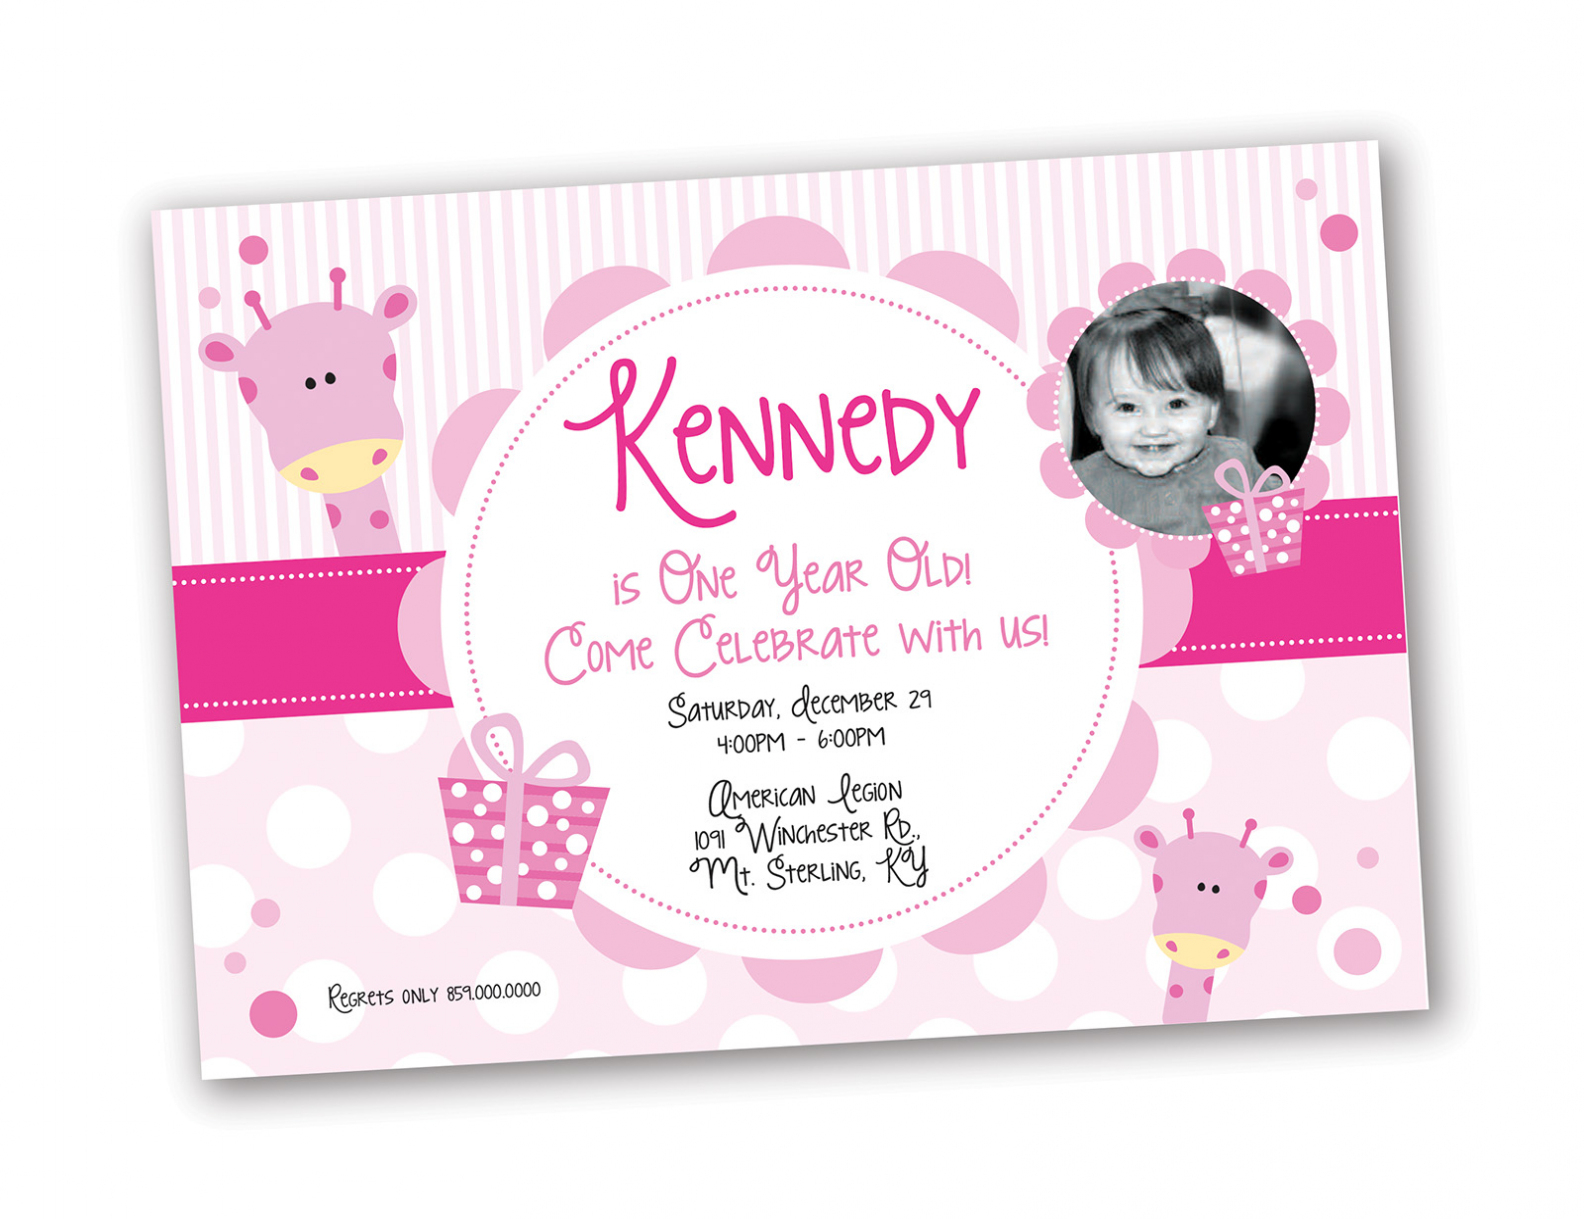 birthday invitation message for 6 year old ; 1-year-old-birthday-invitations-alanarasbach-birthday-invitation-cards-for-1-year-old